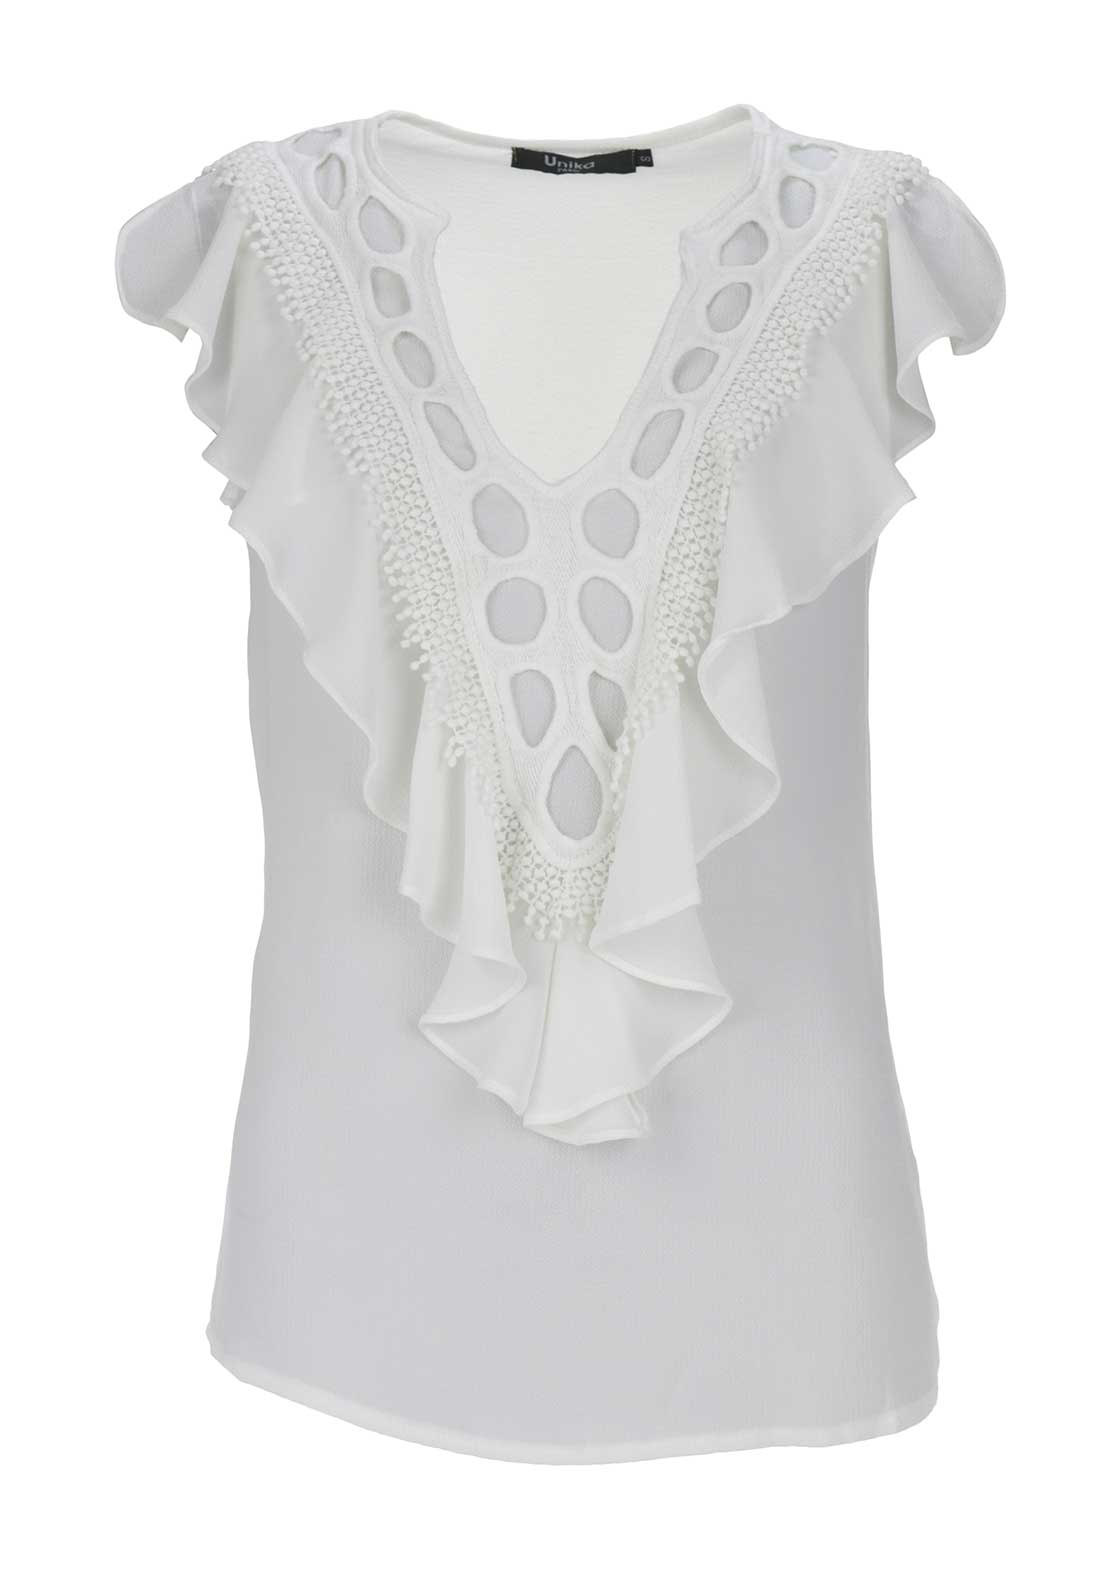 Boutique Sleeveless Crochet Frill Top, Cream